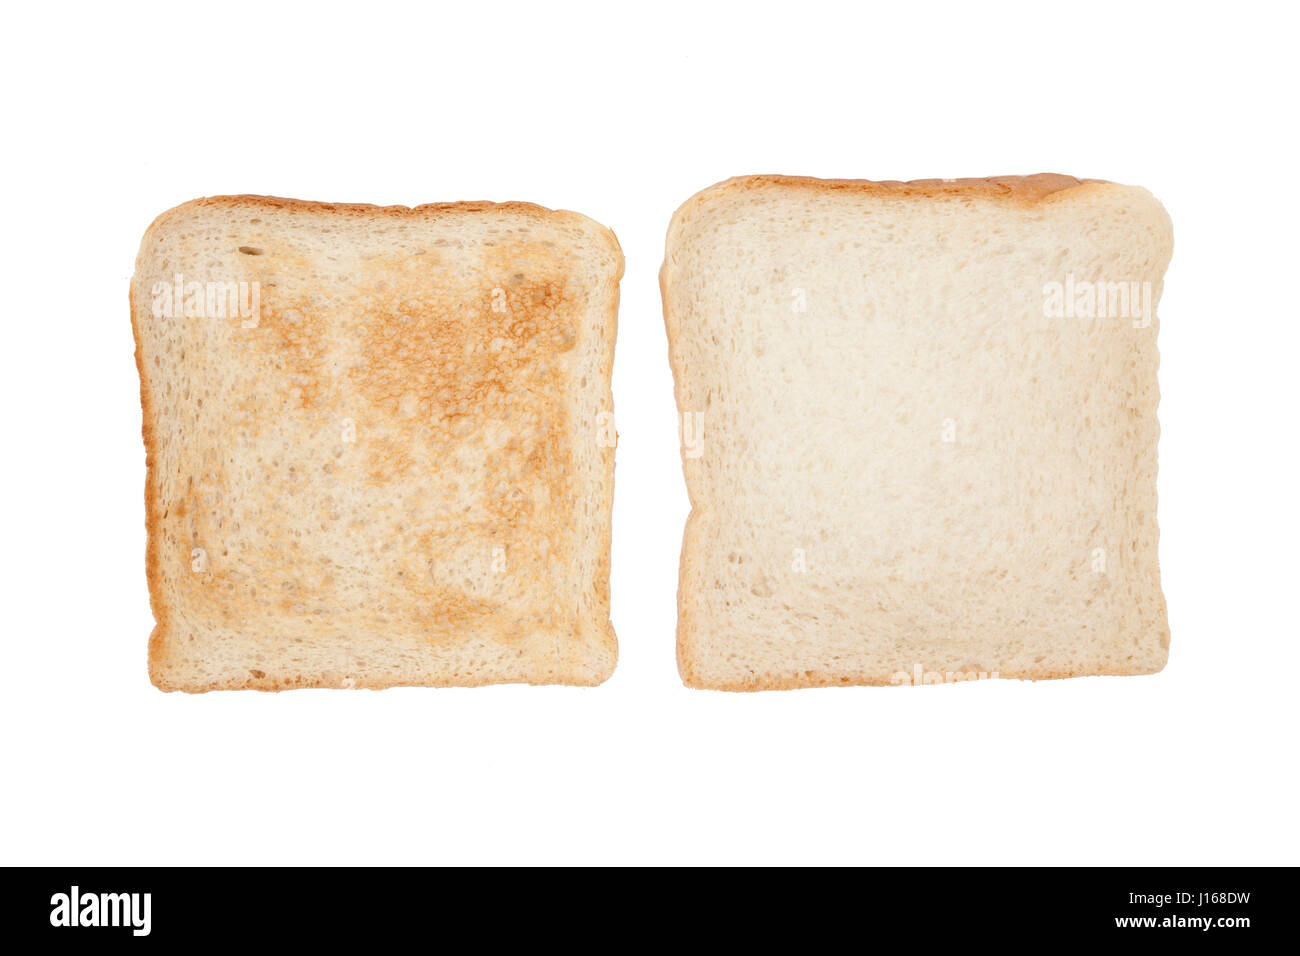 Two slices of tast bread (toasted and not toasted) - Stock Image